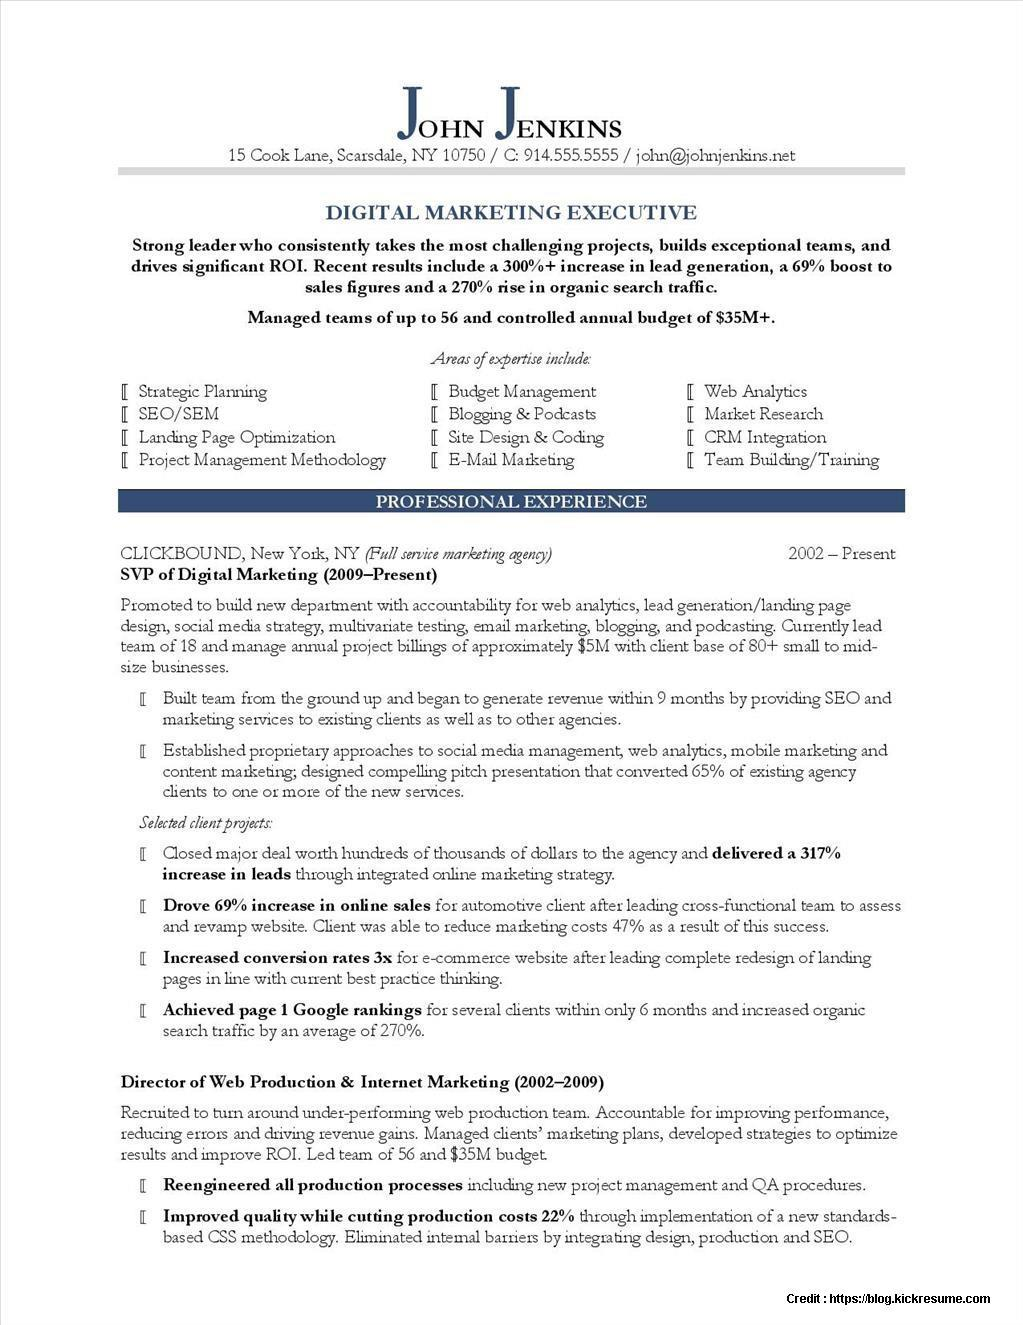 81 Top Digital Marketing Specialist Resume Sample with Images